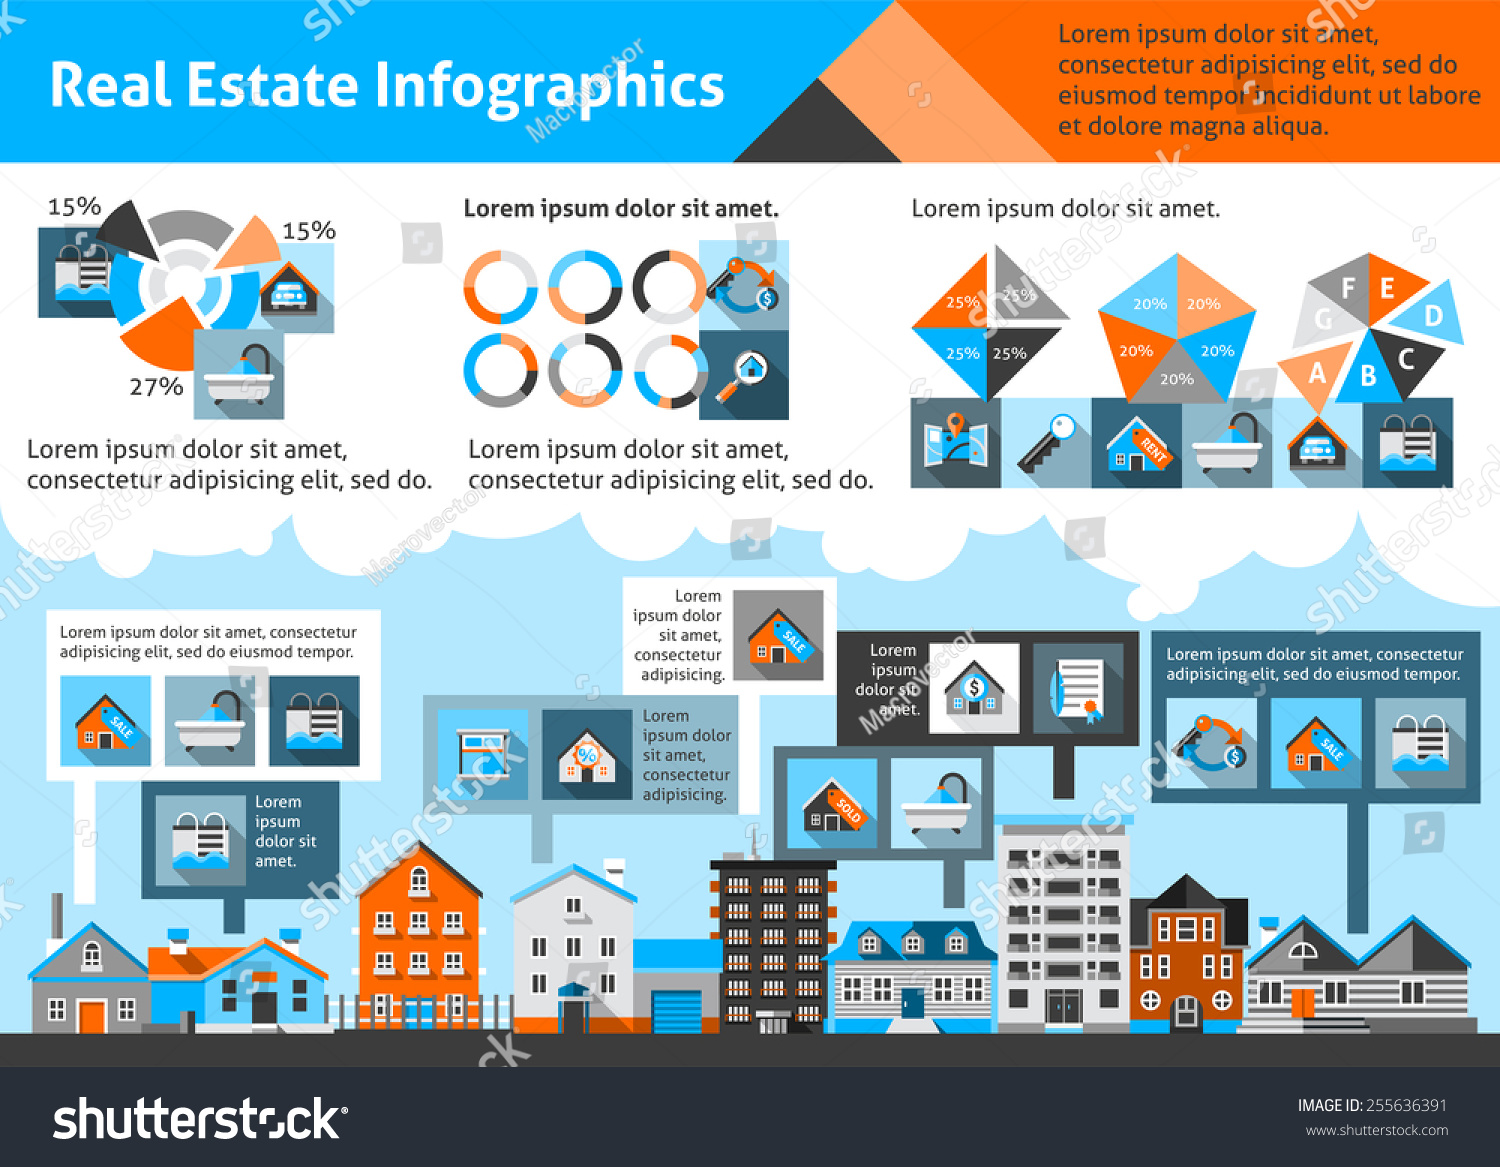 Commercial Property Information : Real estate infographics set commercial property stock